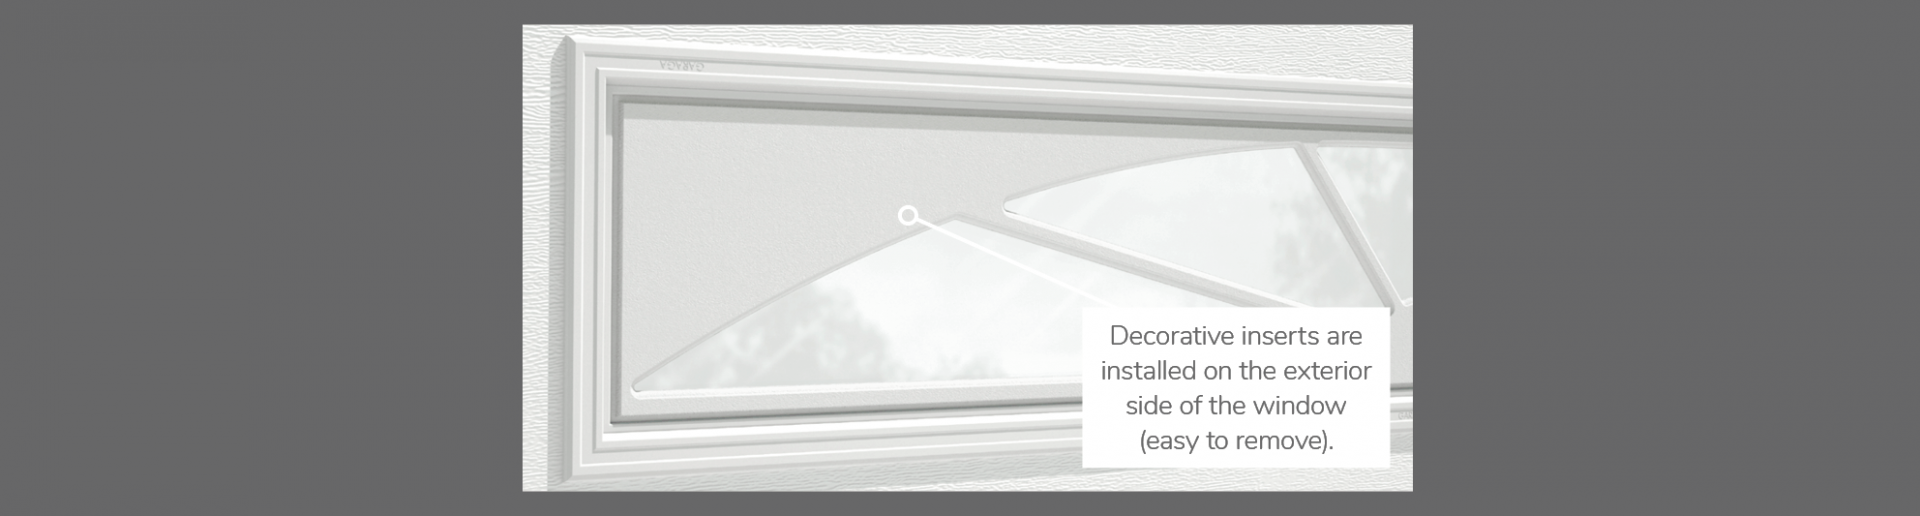 "Williamsburg Decorative Insert, 40"" x 13"", available for door 2 layers - Polystyrene and Non-insulated"